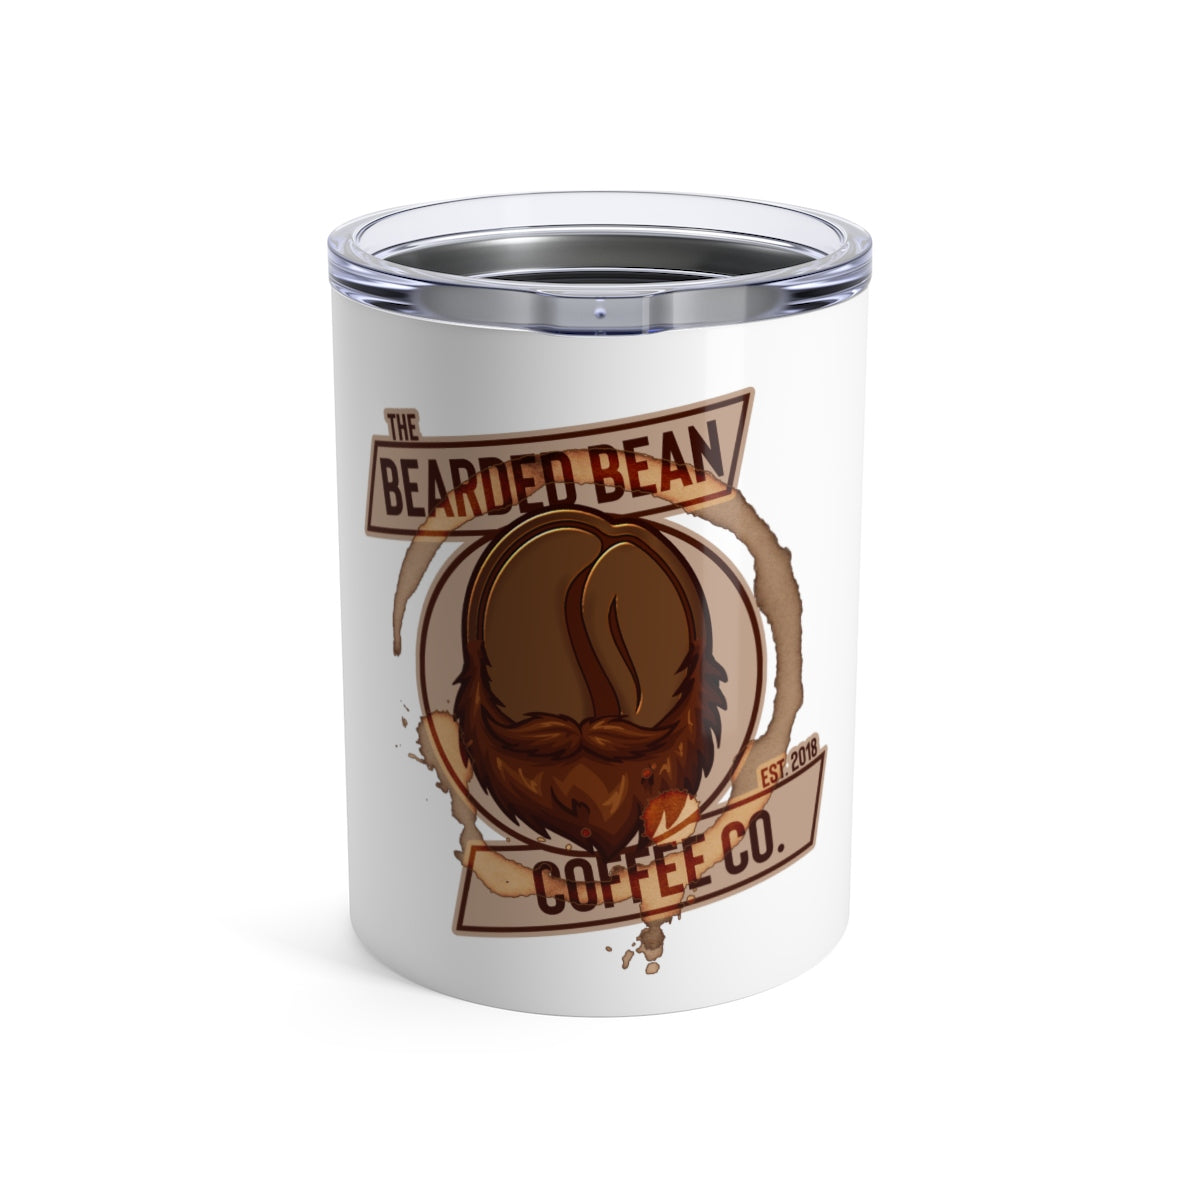 BBCC 10oz TUMBLER - The Bearded Bean Coffee Company